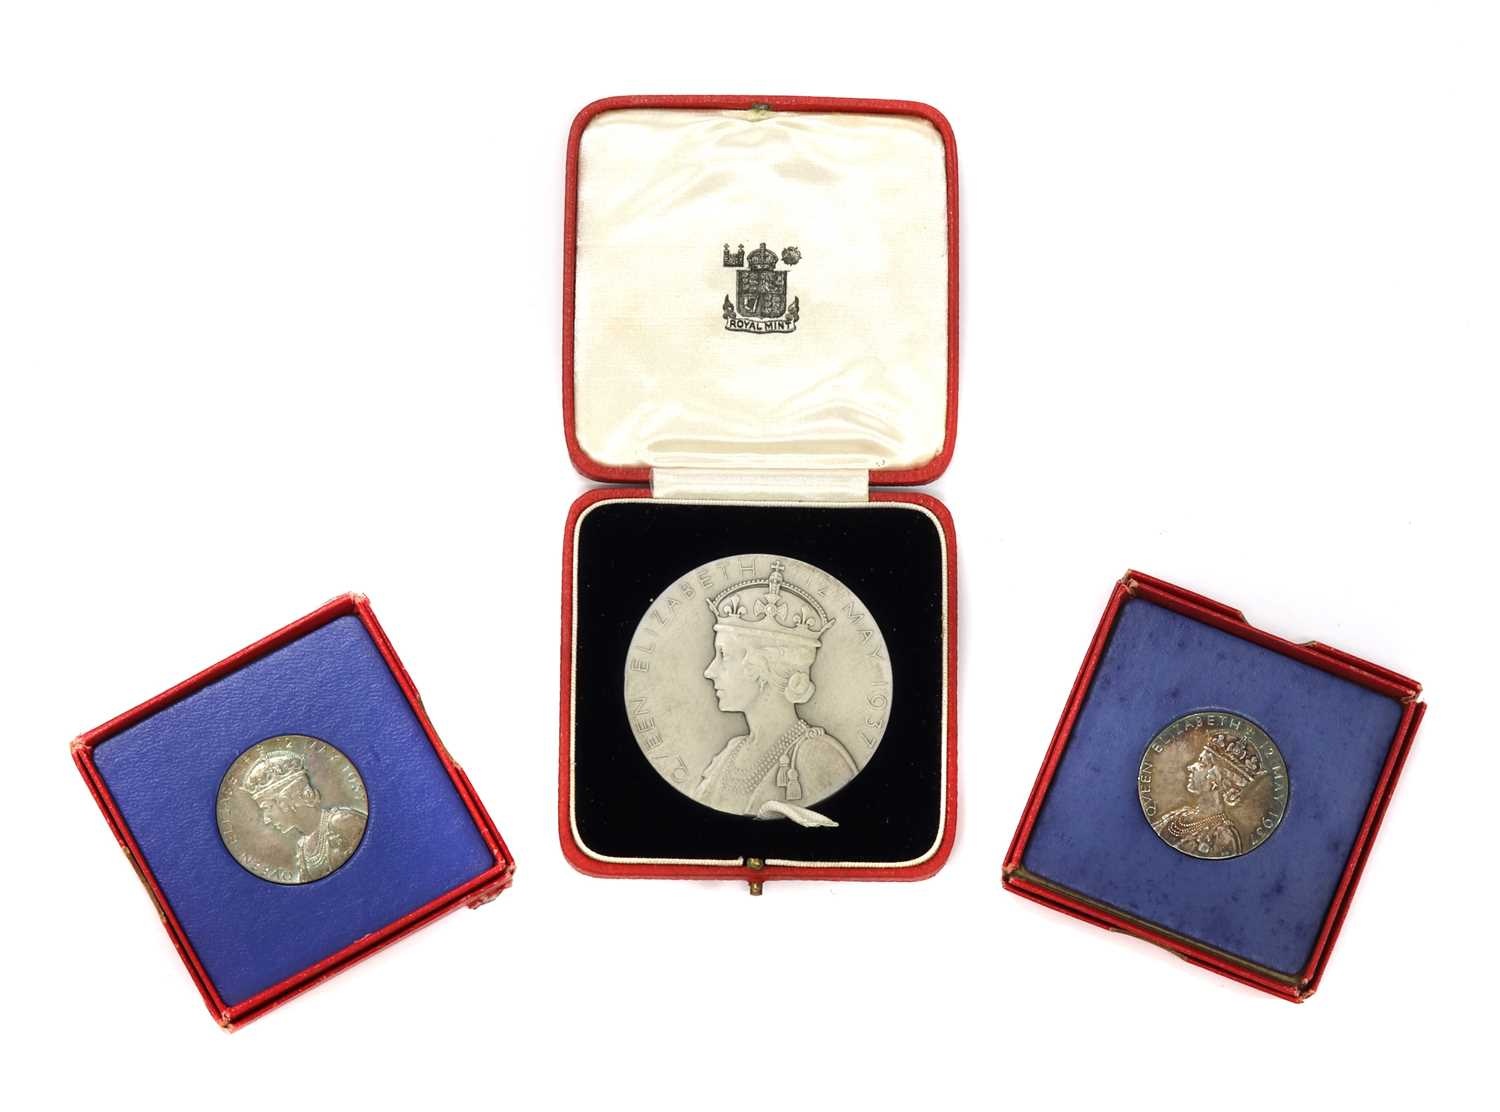 Medals, Great Britain, George VI (1937-1952), - Image 2 of 3